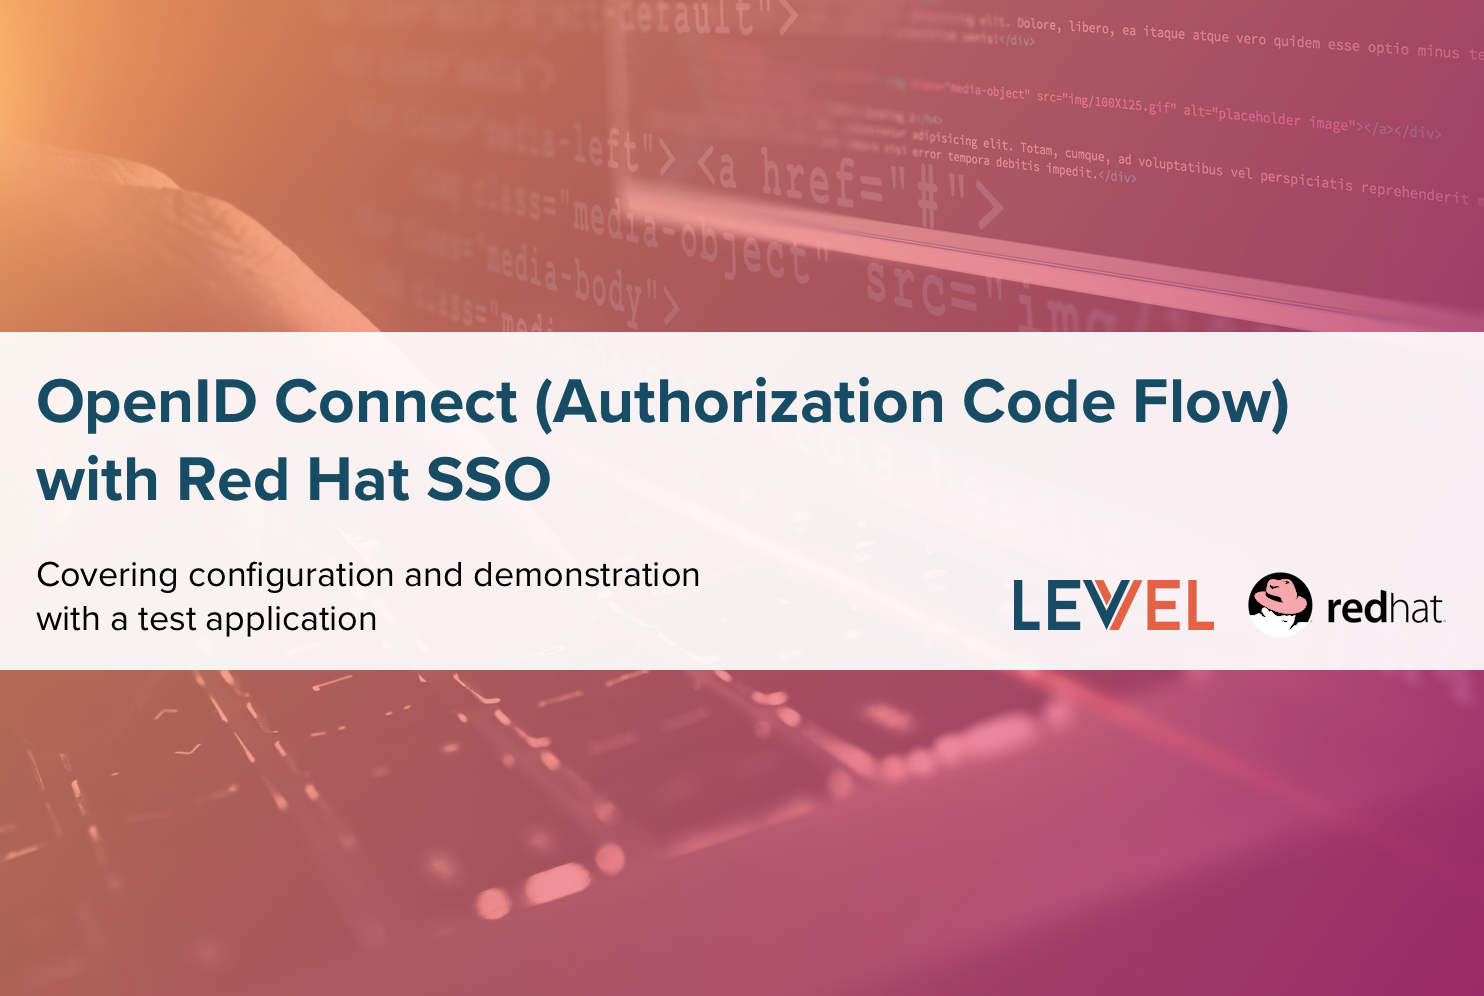 DevOps - OpenID Connect (Authorization Code Flow) with Red